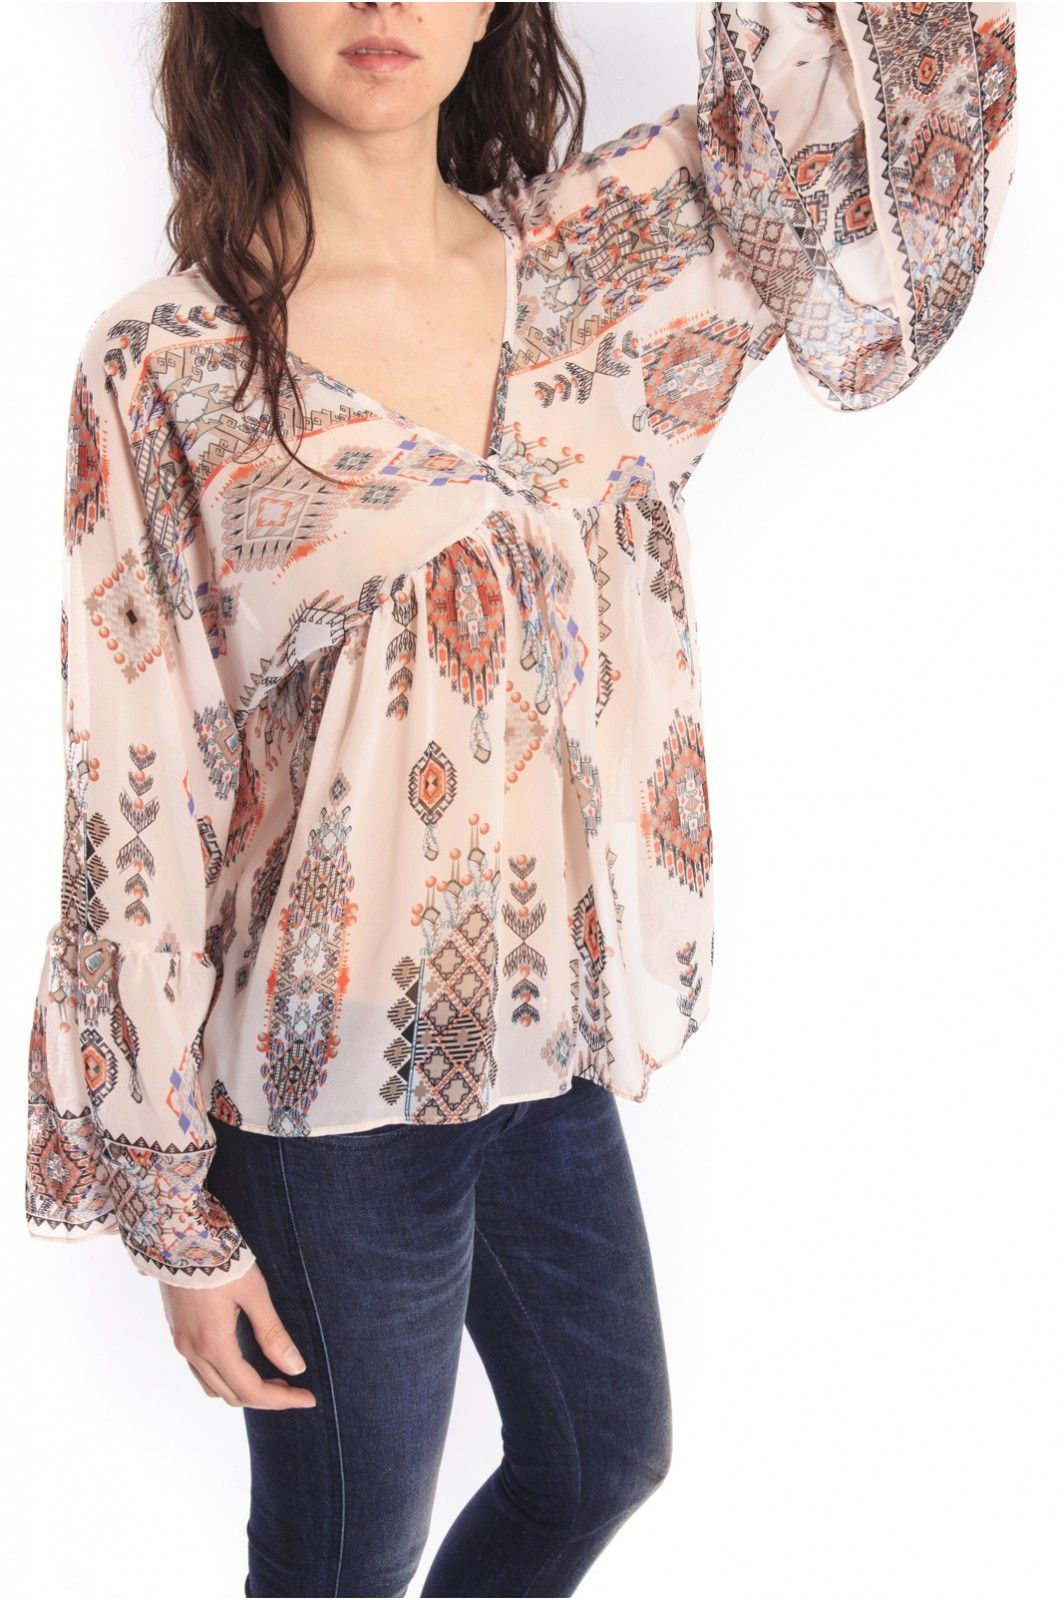 Denny Rose Print blouse with knitted fantasy Art 46DR41015